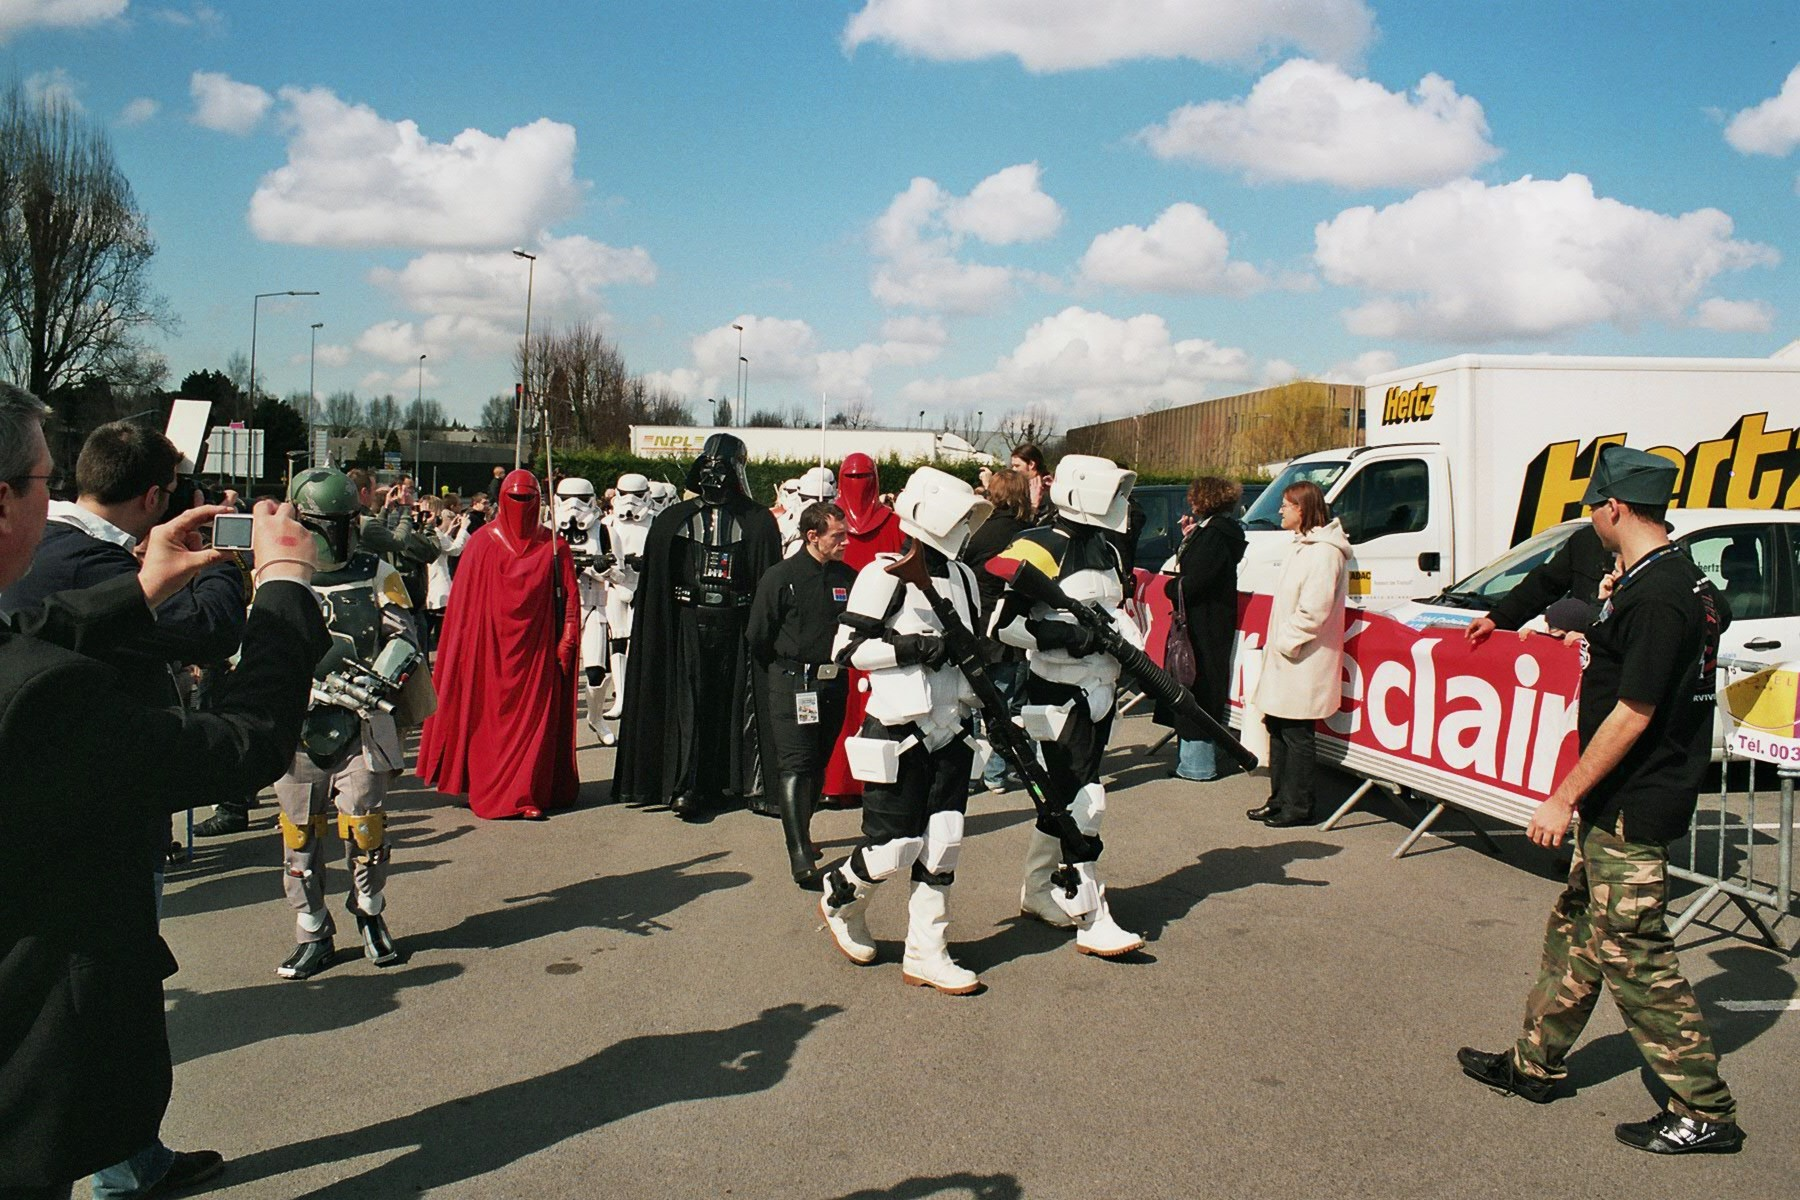 Photo 165 - Darth Vader parade